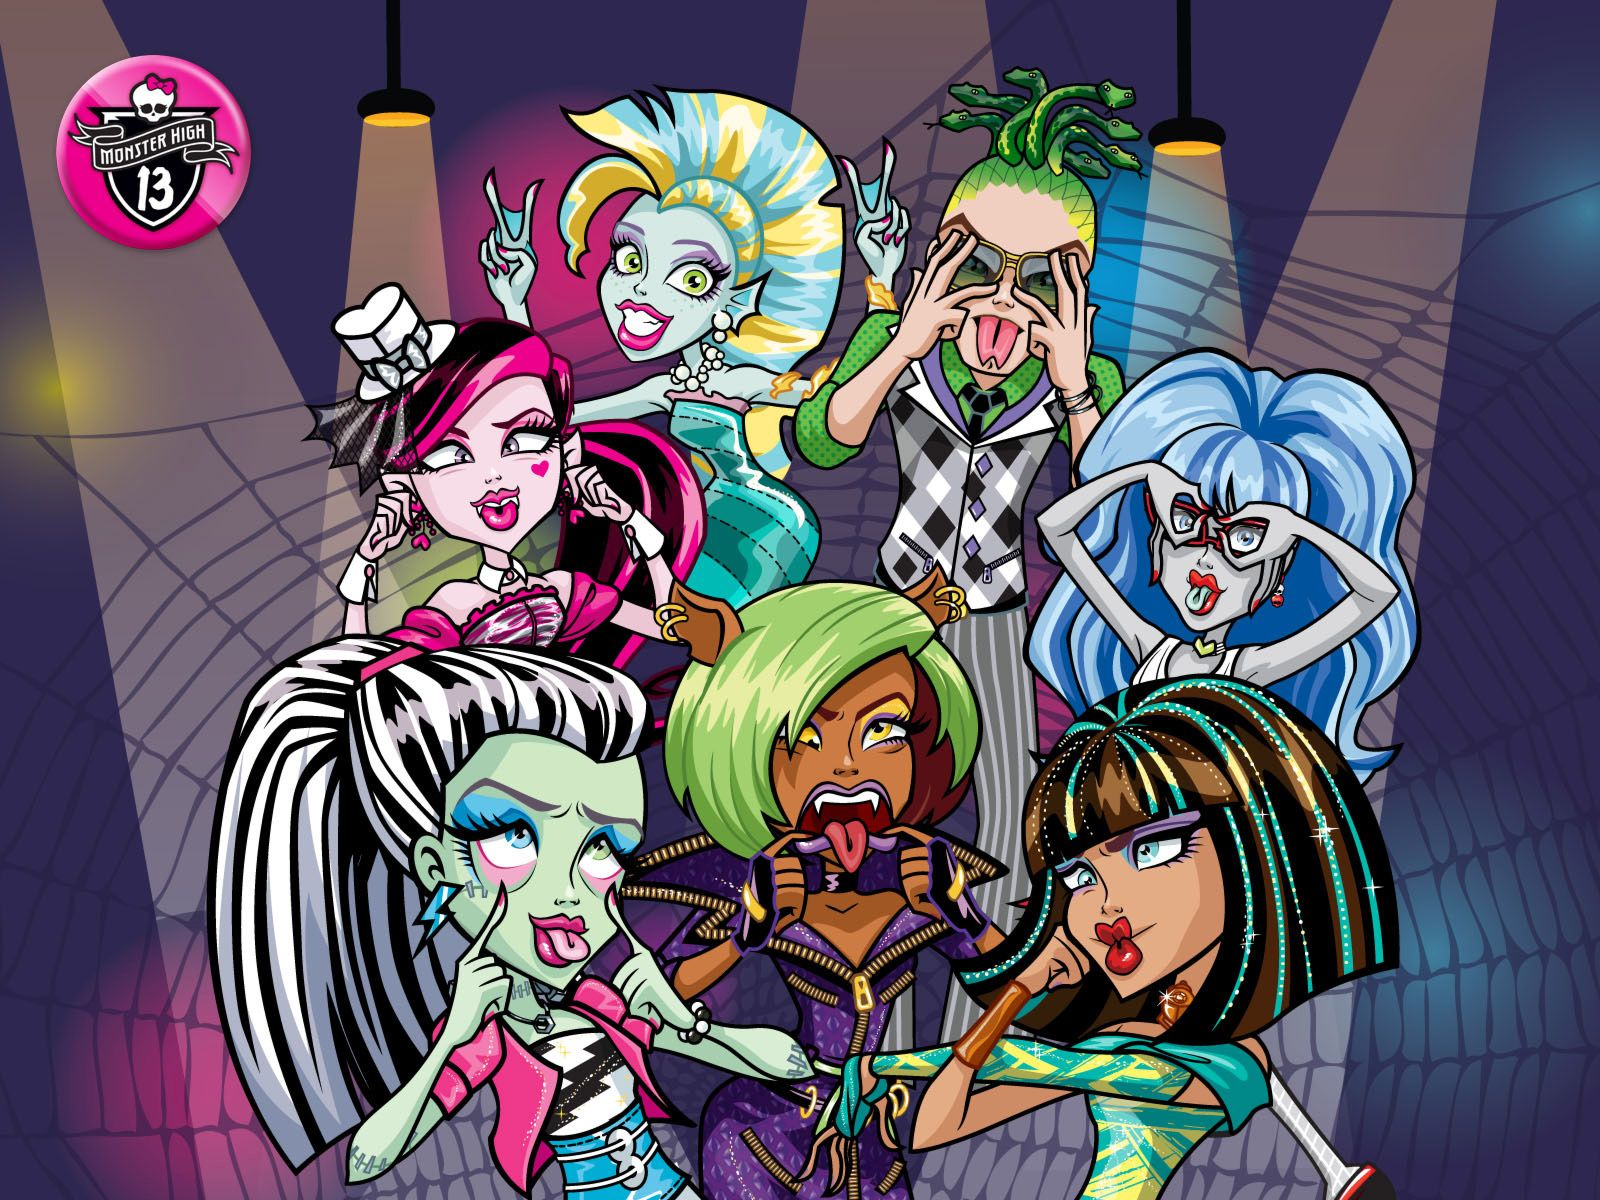 Fondos De Pantalla De Monster High: Monster High-Pretty Feliz 2013: Nuevos